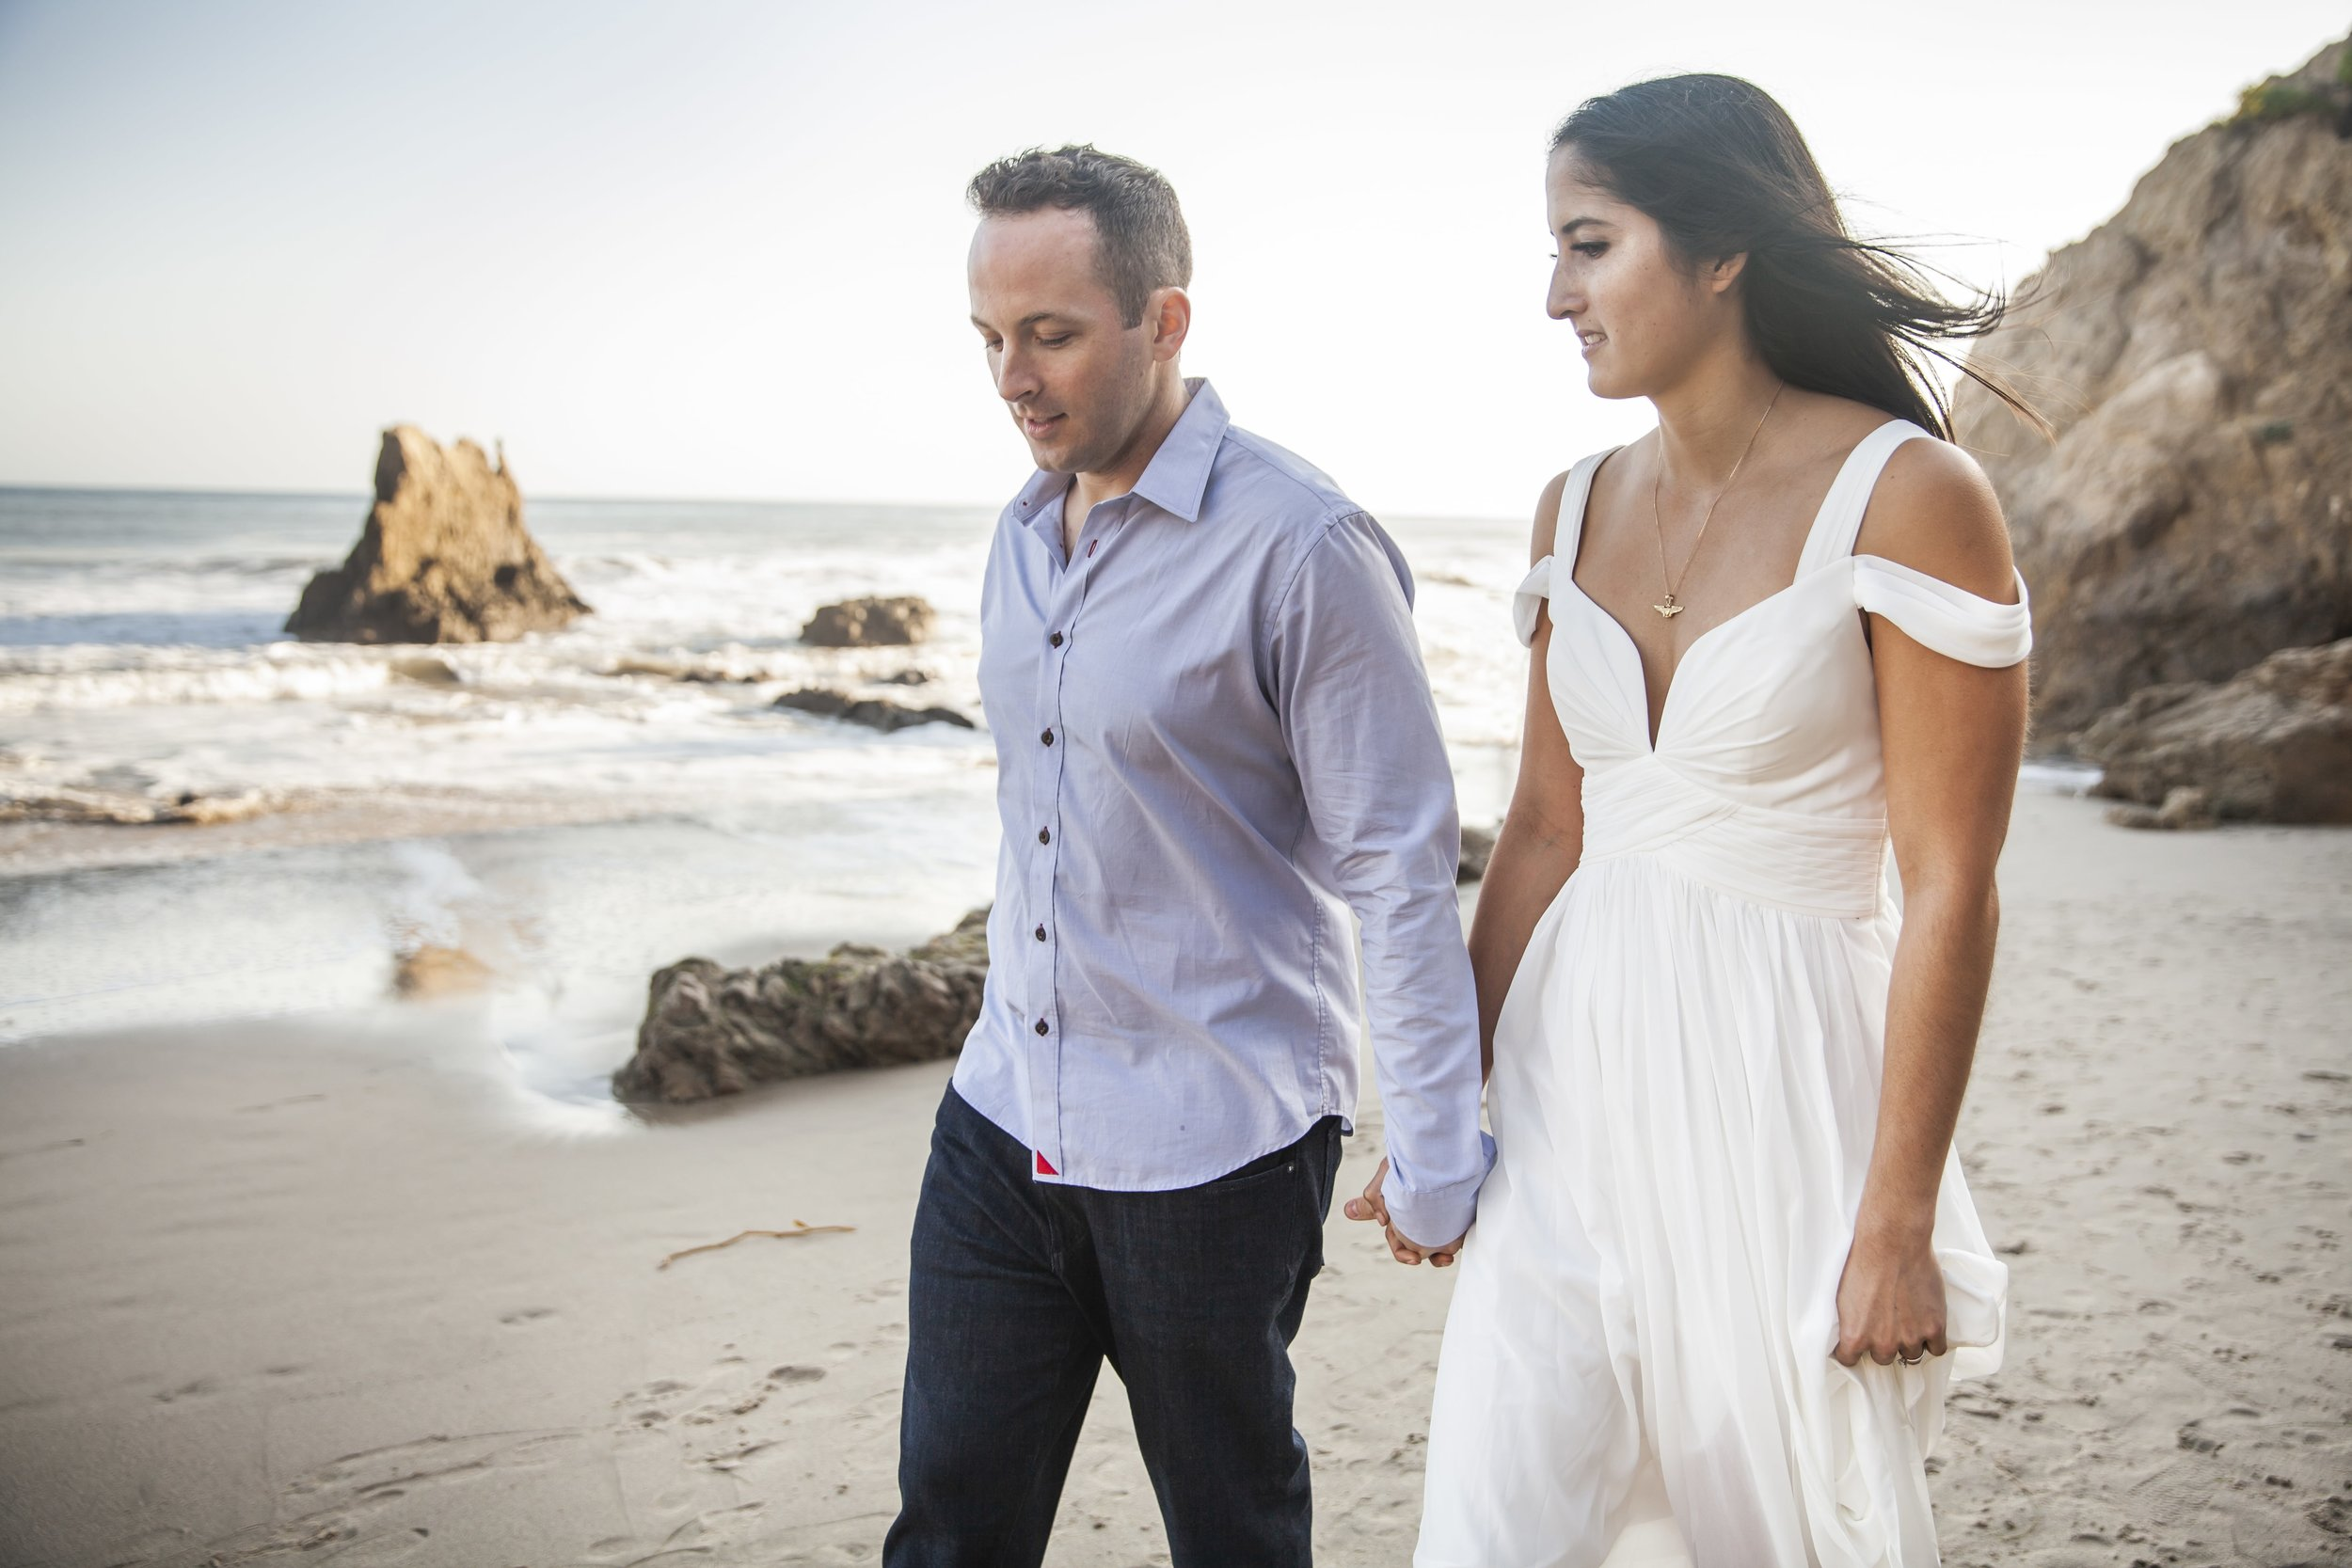 California Engagement Photography - Engaged couple walking hand in hand along the beach front.